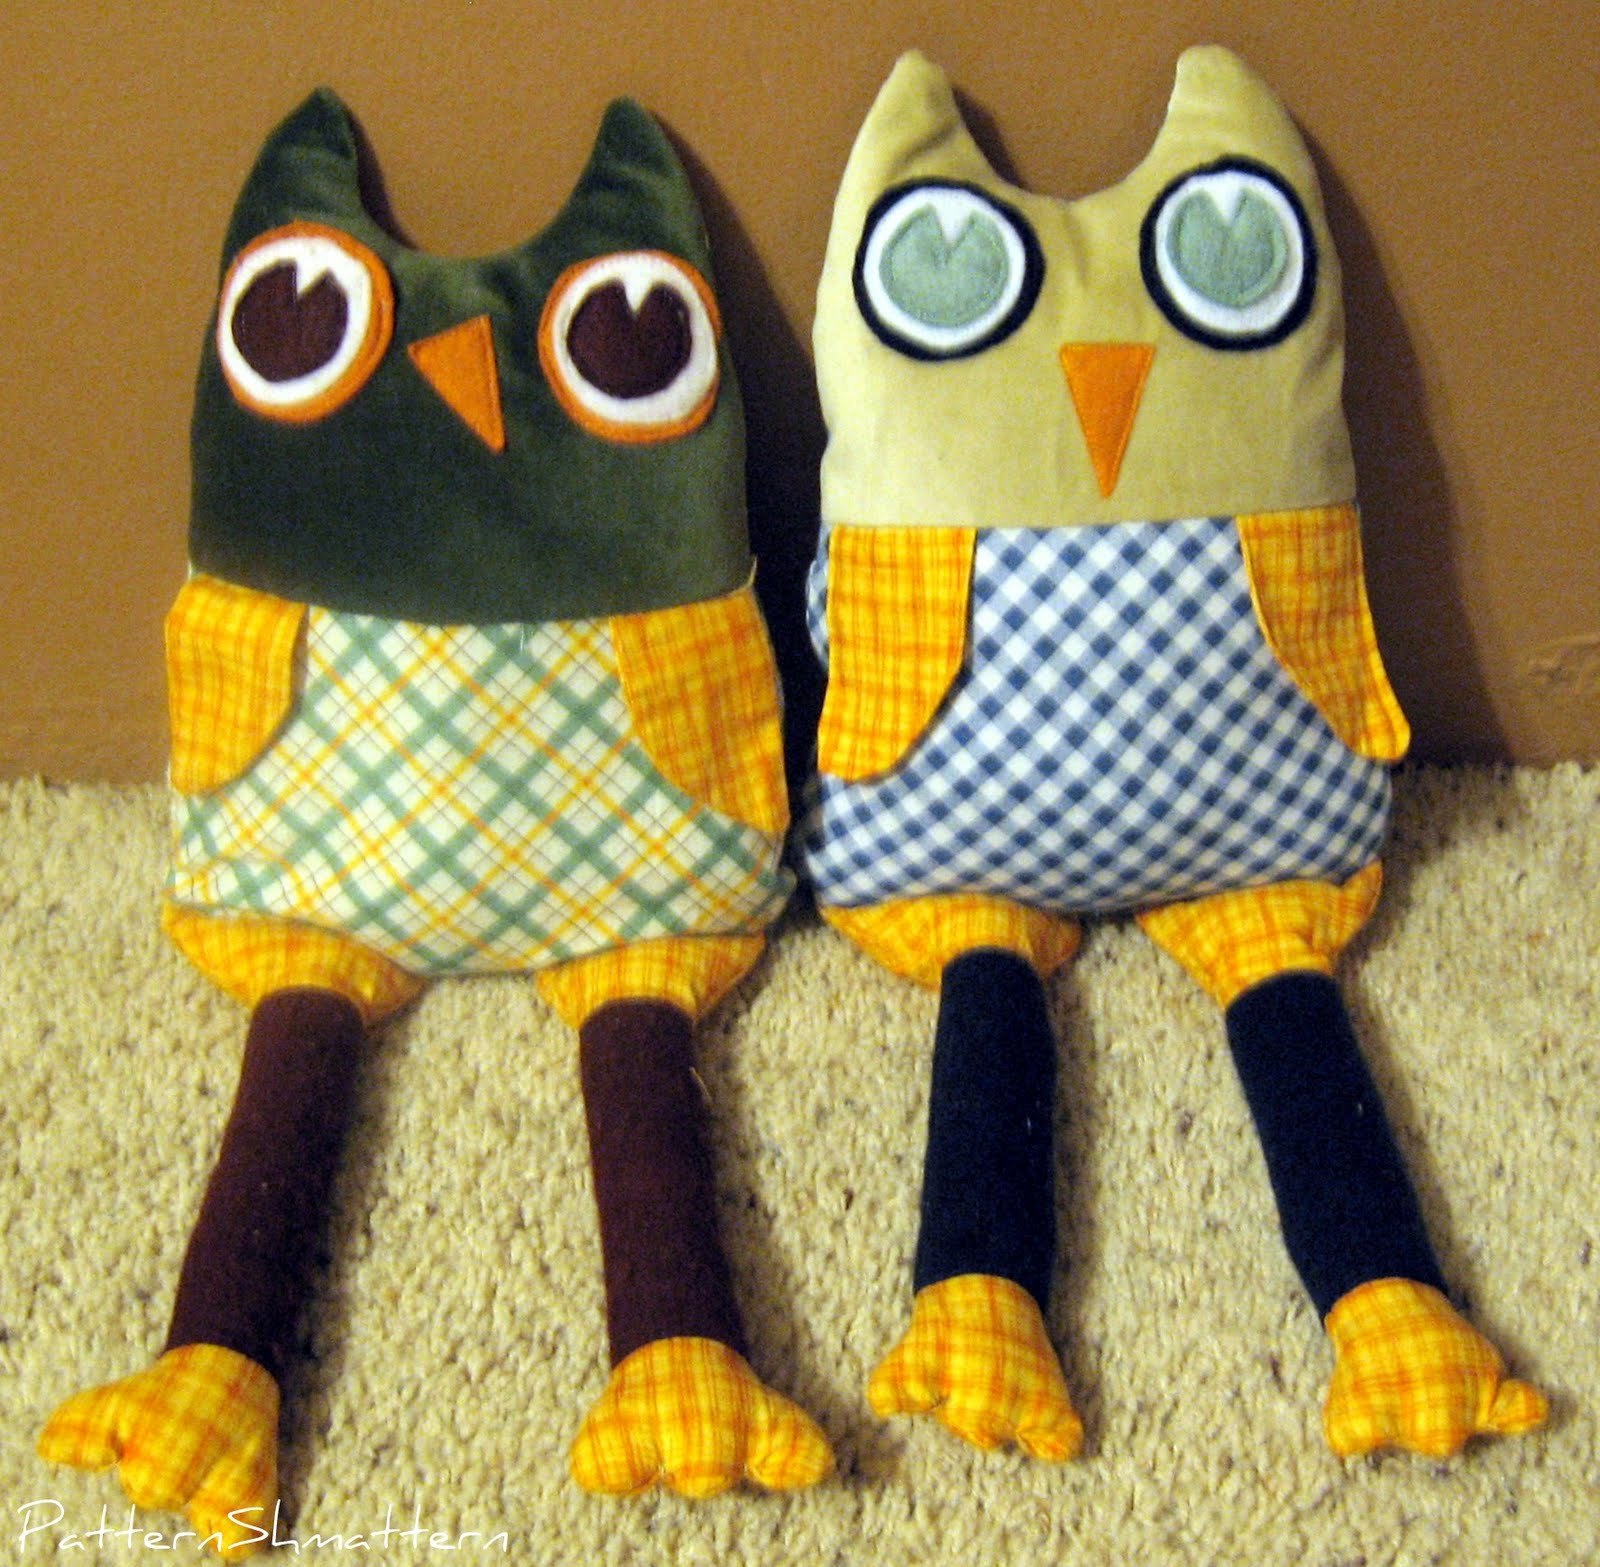 Stuff Owl Pattern Shmattern Stuffed Animal Owl Pattern And Tutorial